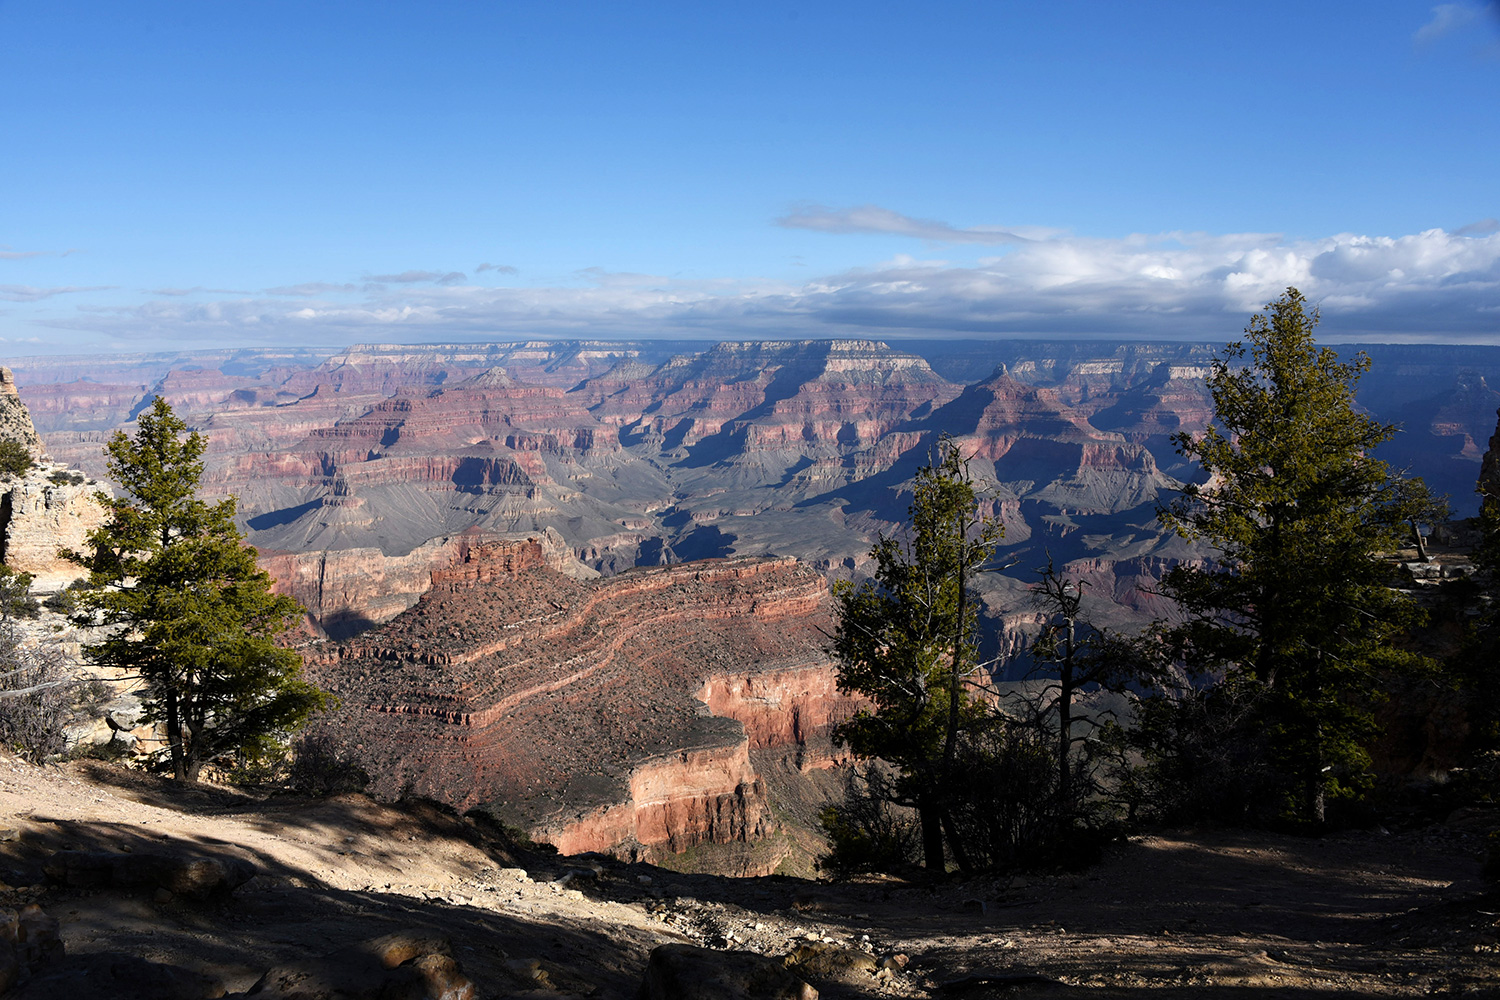 South Rim of Grand Canyon National Park, located in northwestern Arizona, is the 15th site in the United States to have been named a national park